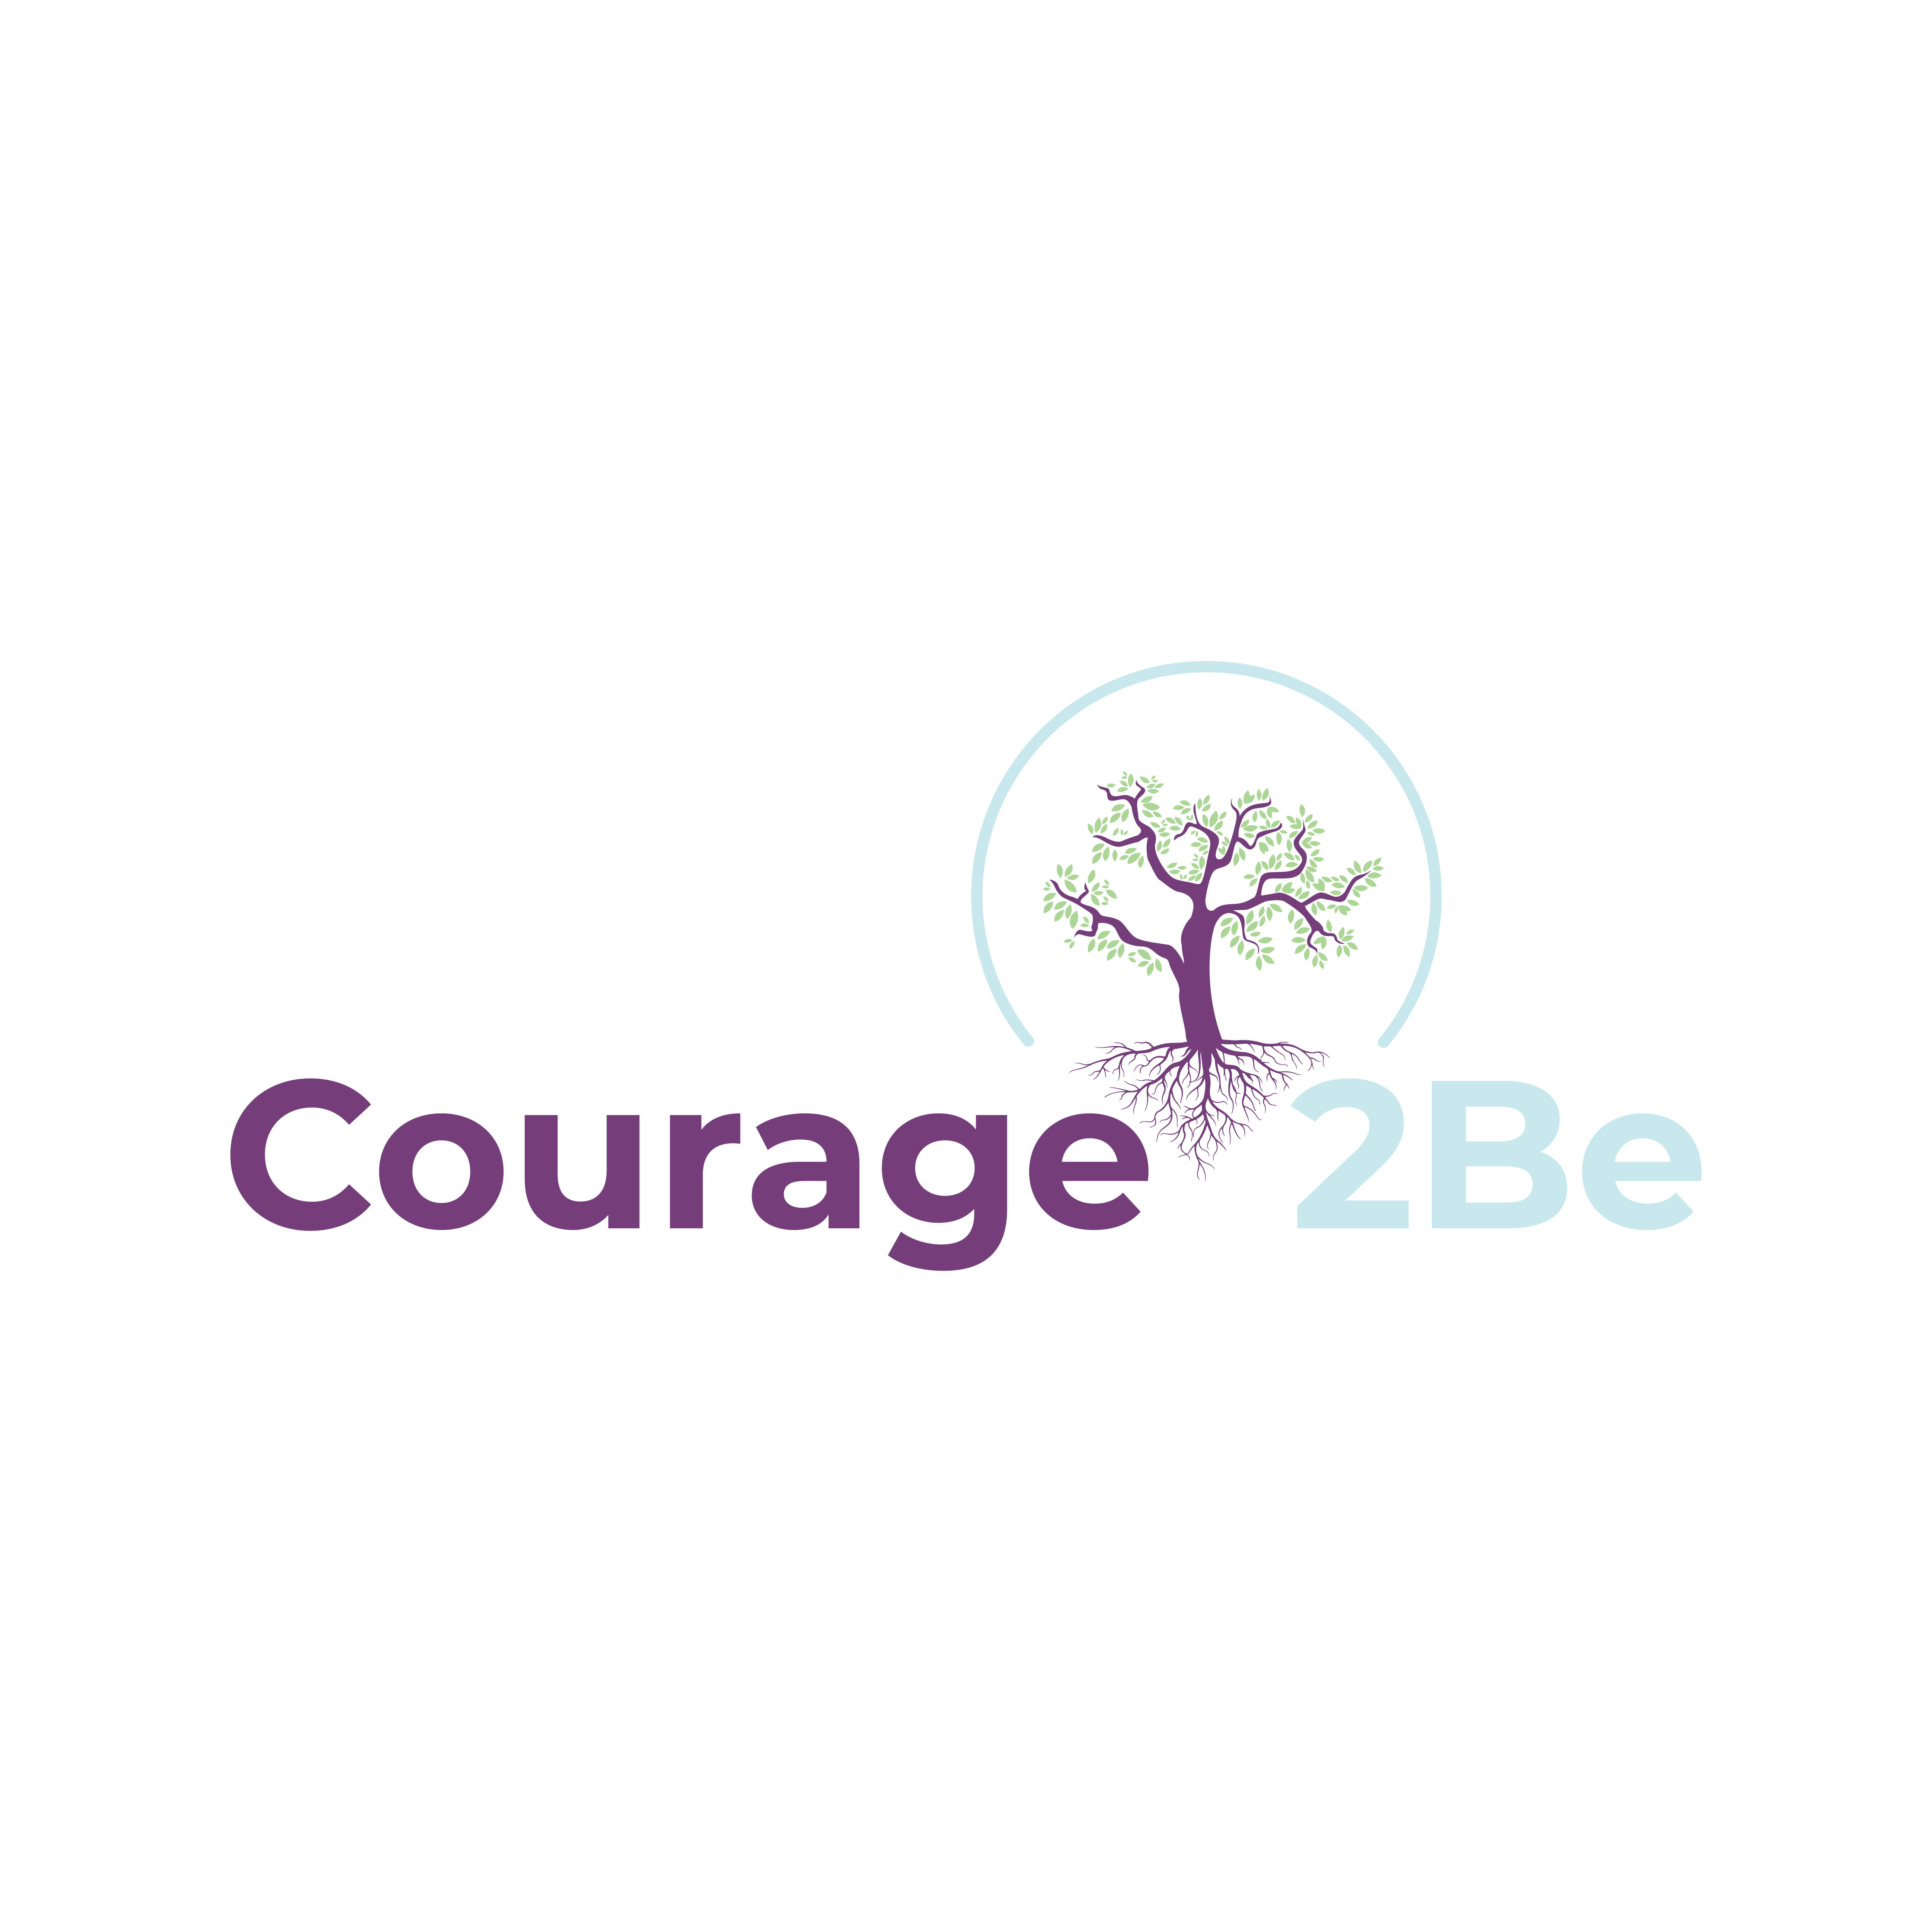 Courage2Be